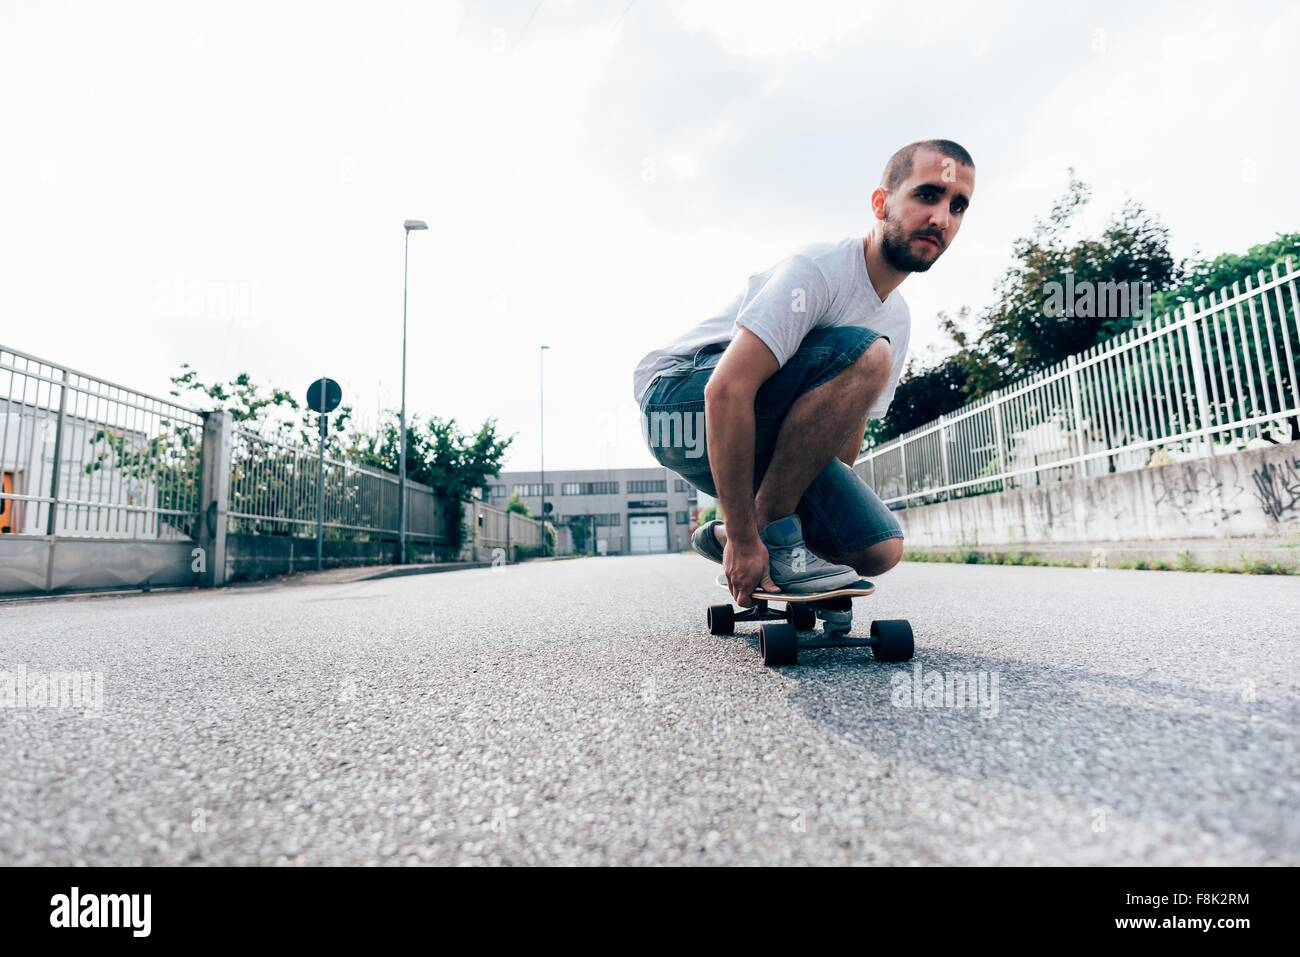 Young man crouched on skateboard - Stock Image